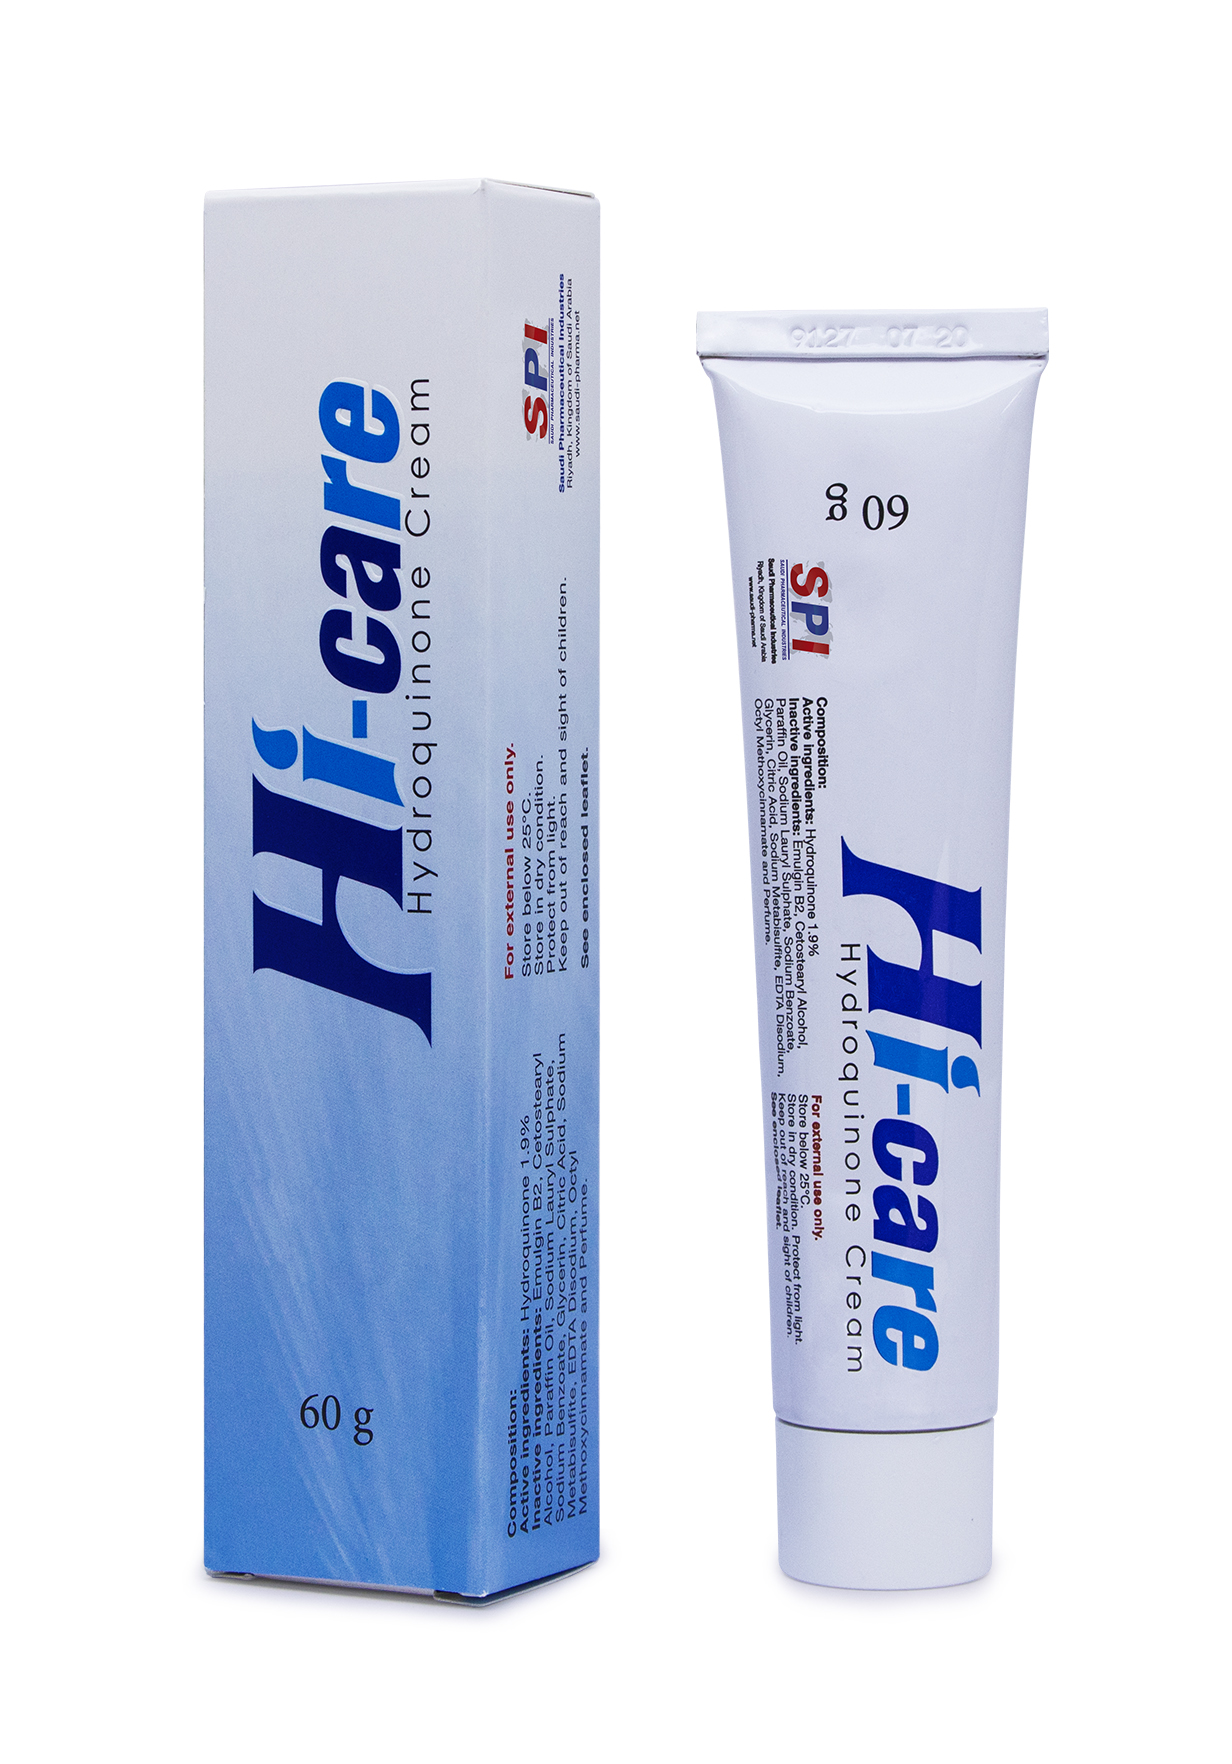 Hi-Care Cream